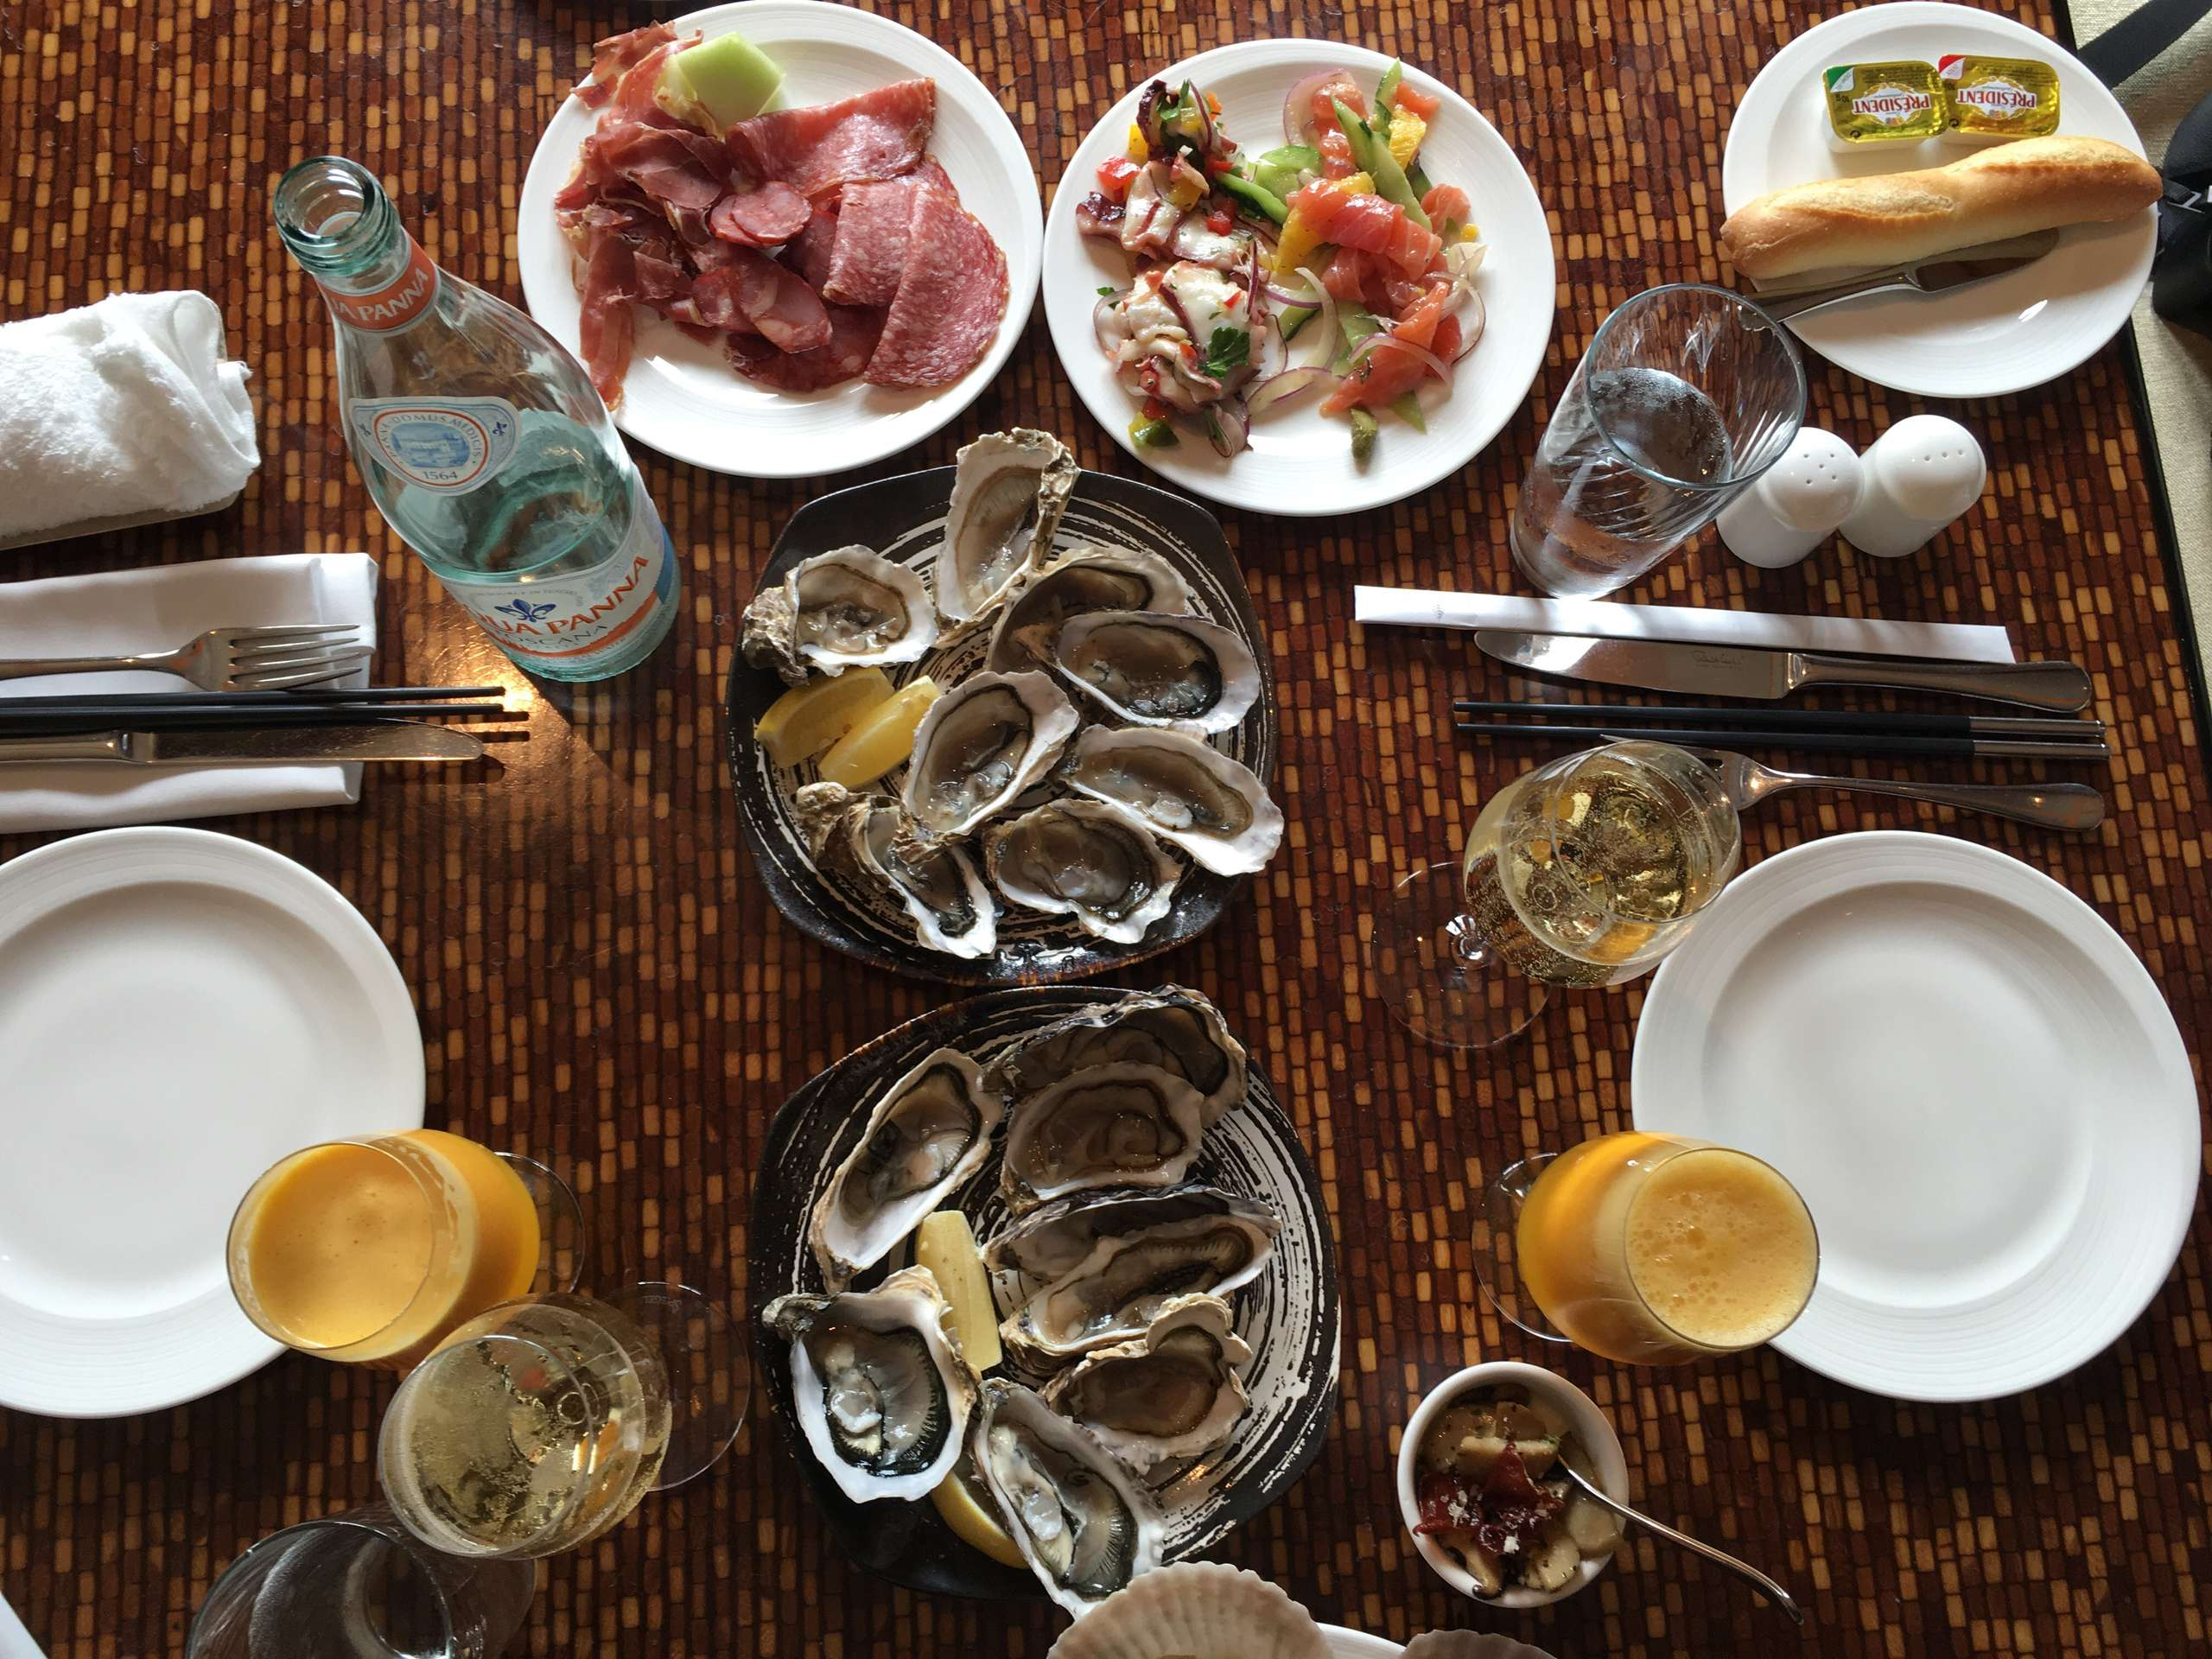 Four seasons brunch with oysters, white wine and juice